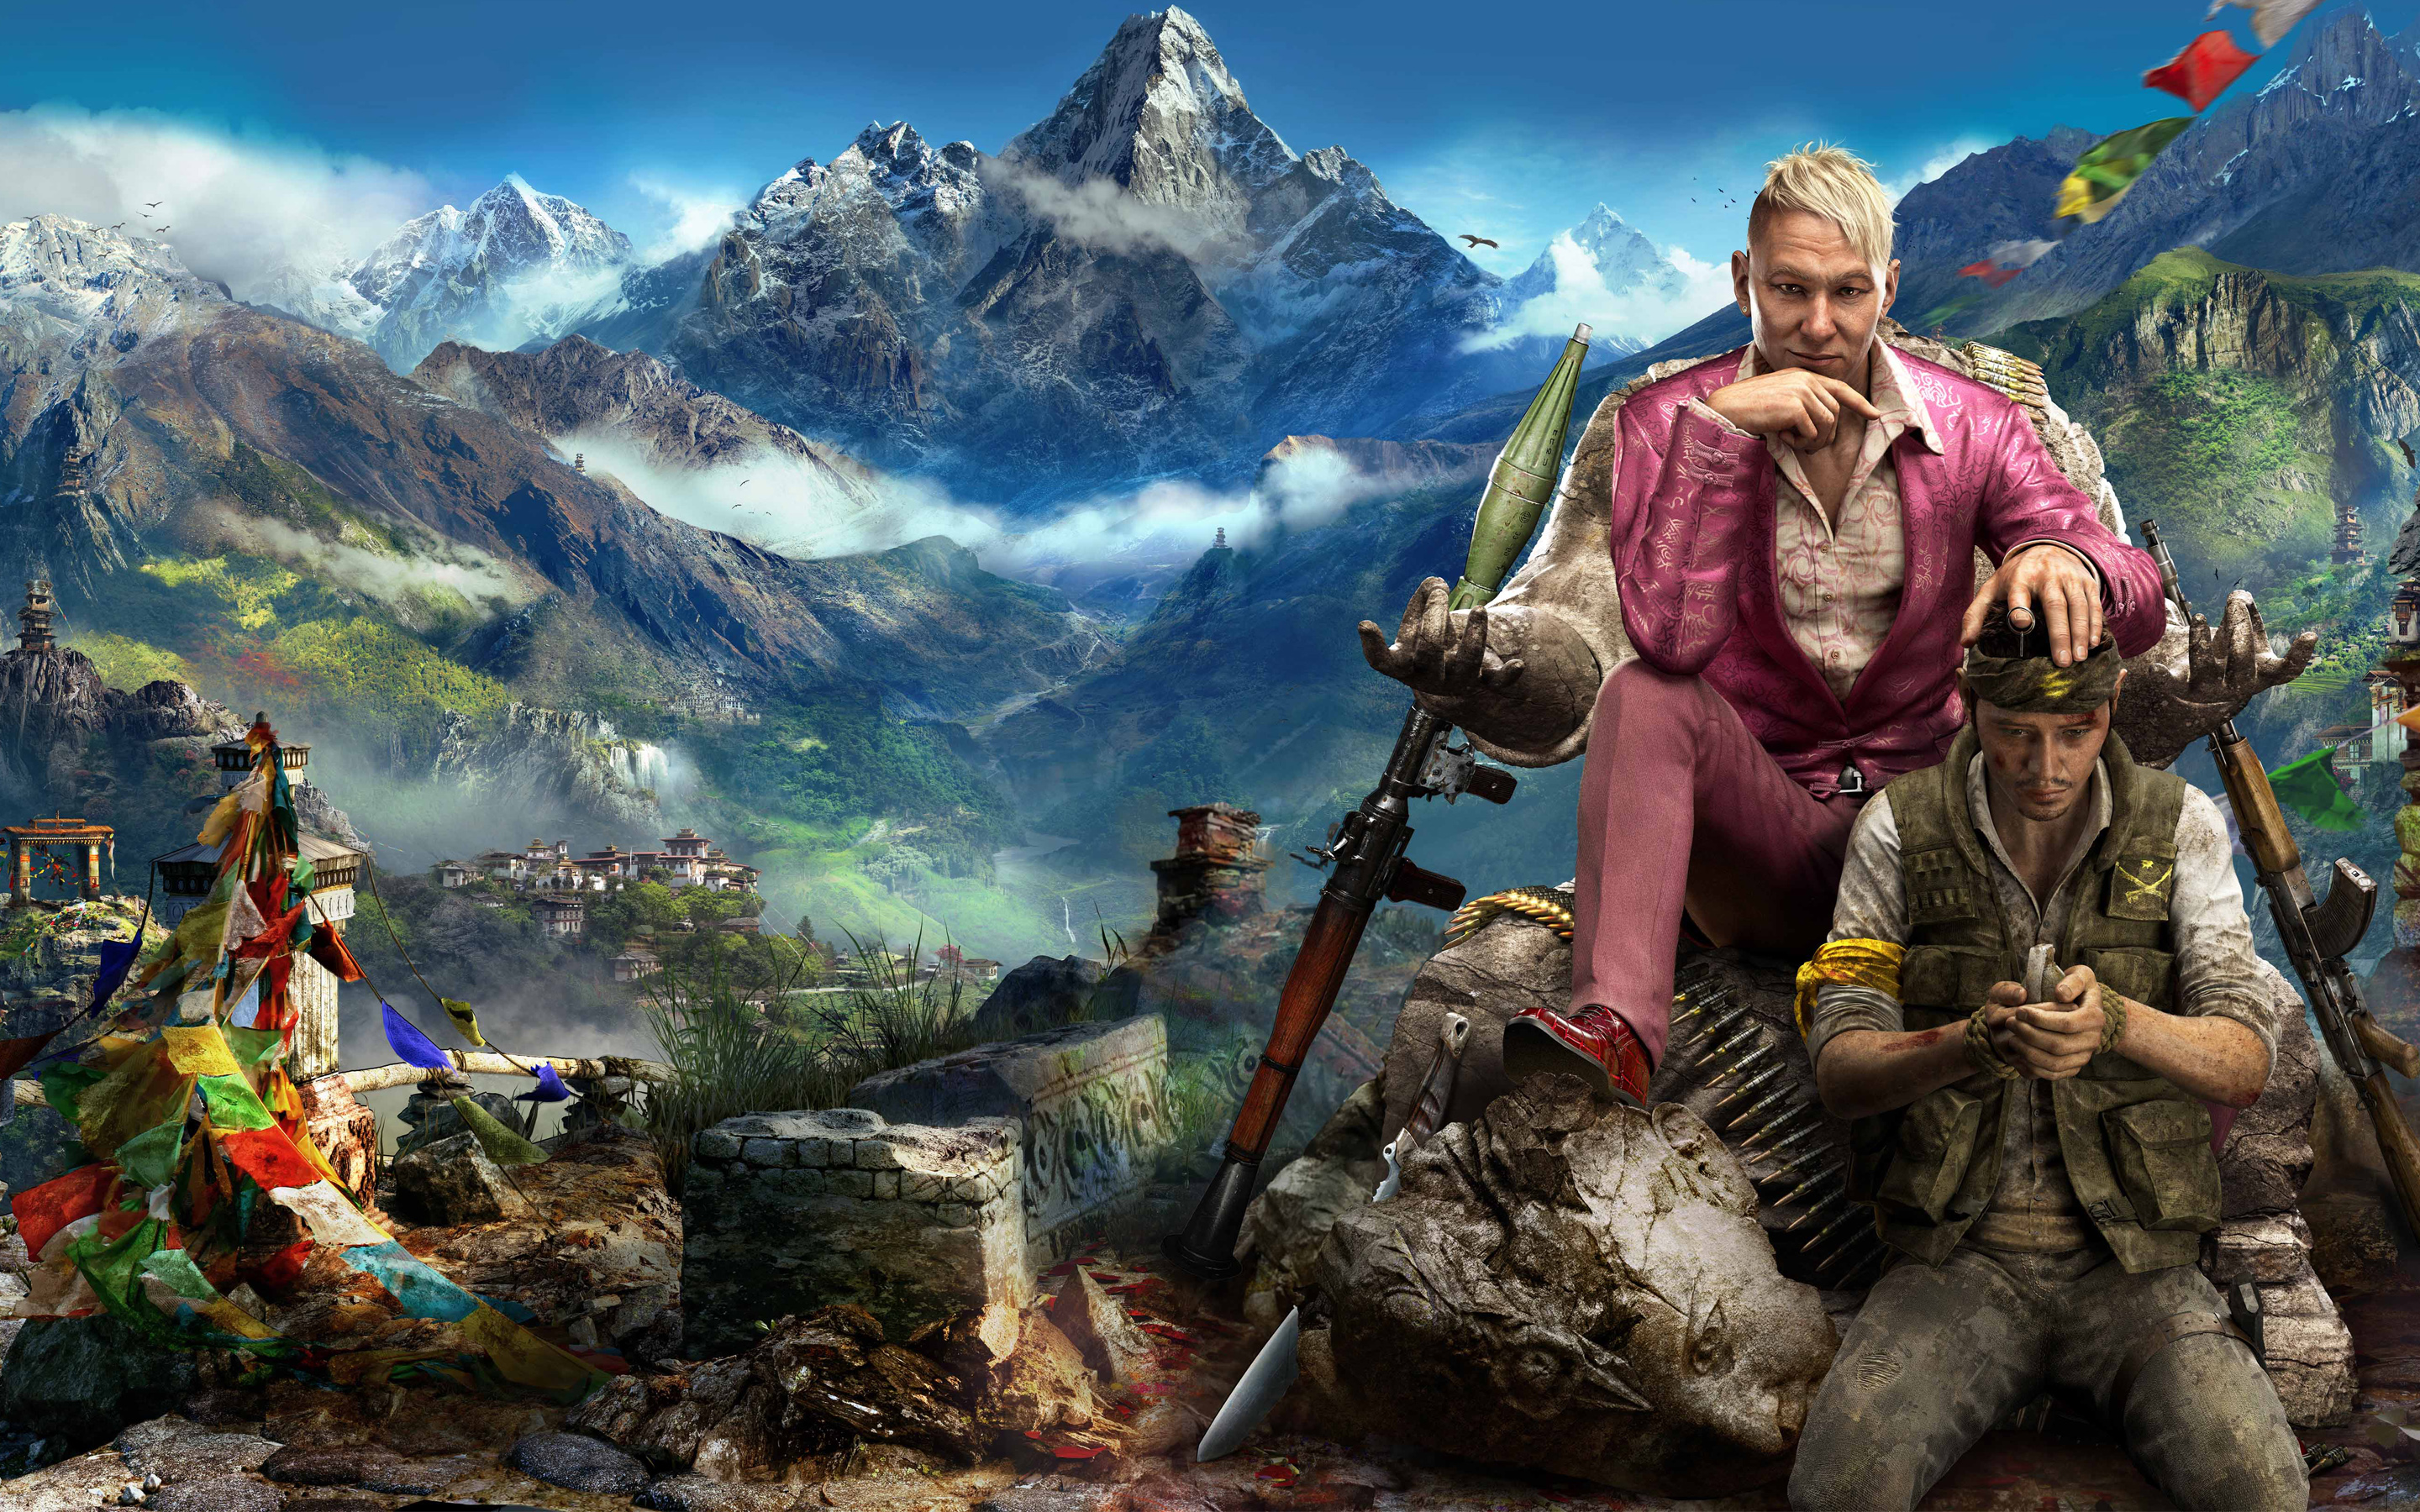 HD Wallpapers Far Cry 4 New Game